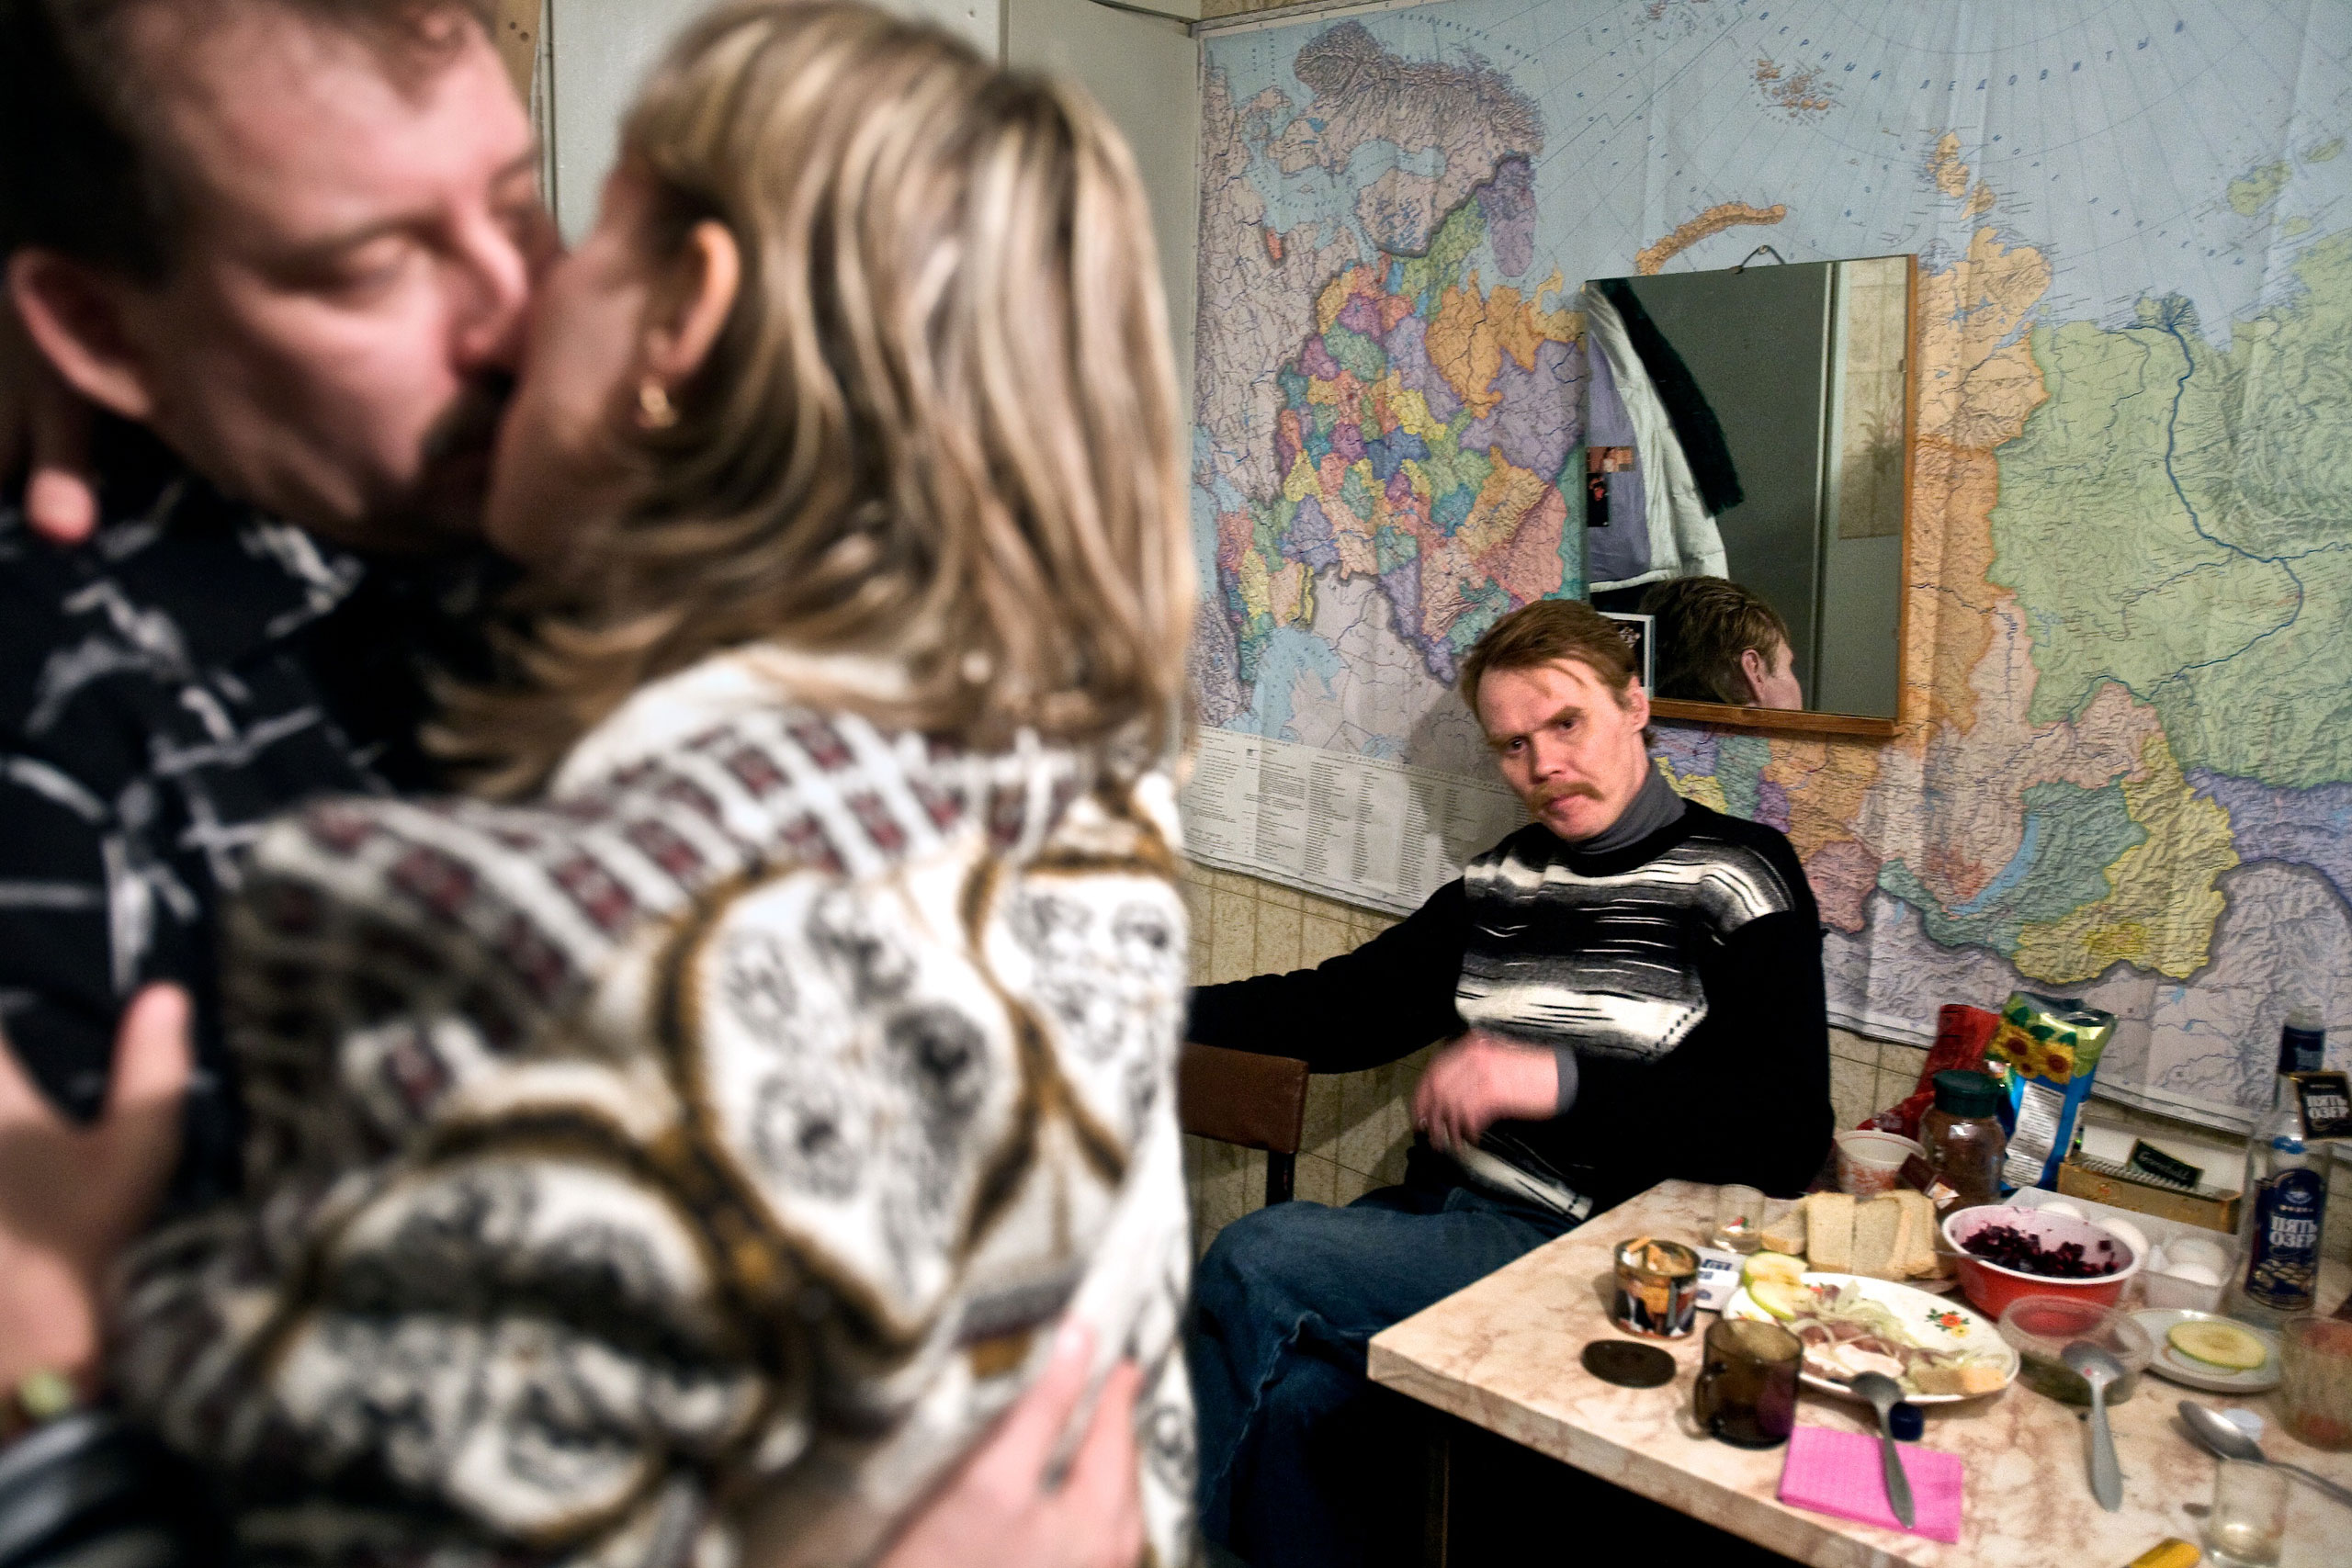 Valery, a married miner and union representative in Severny village outside Vorkuta, dances with his lover Lena, while his friend Alexander watches jealously.